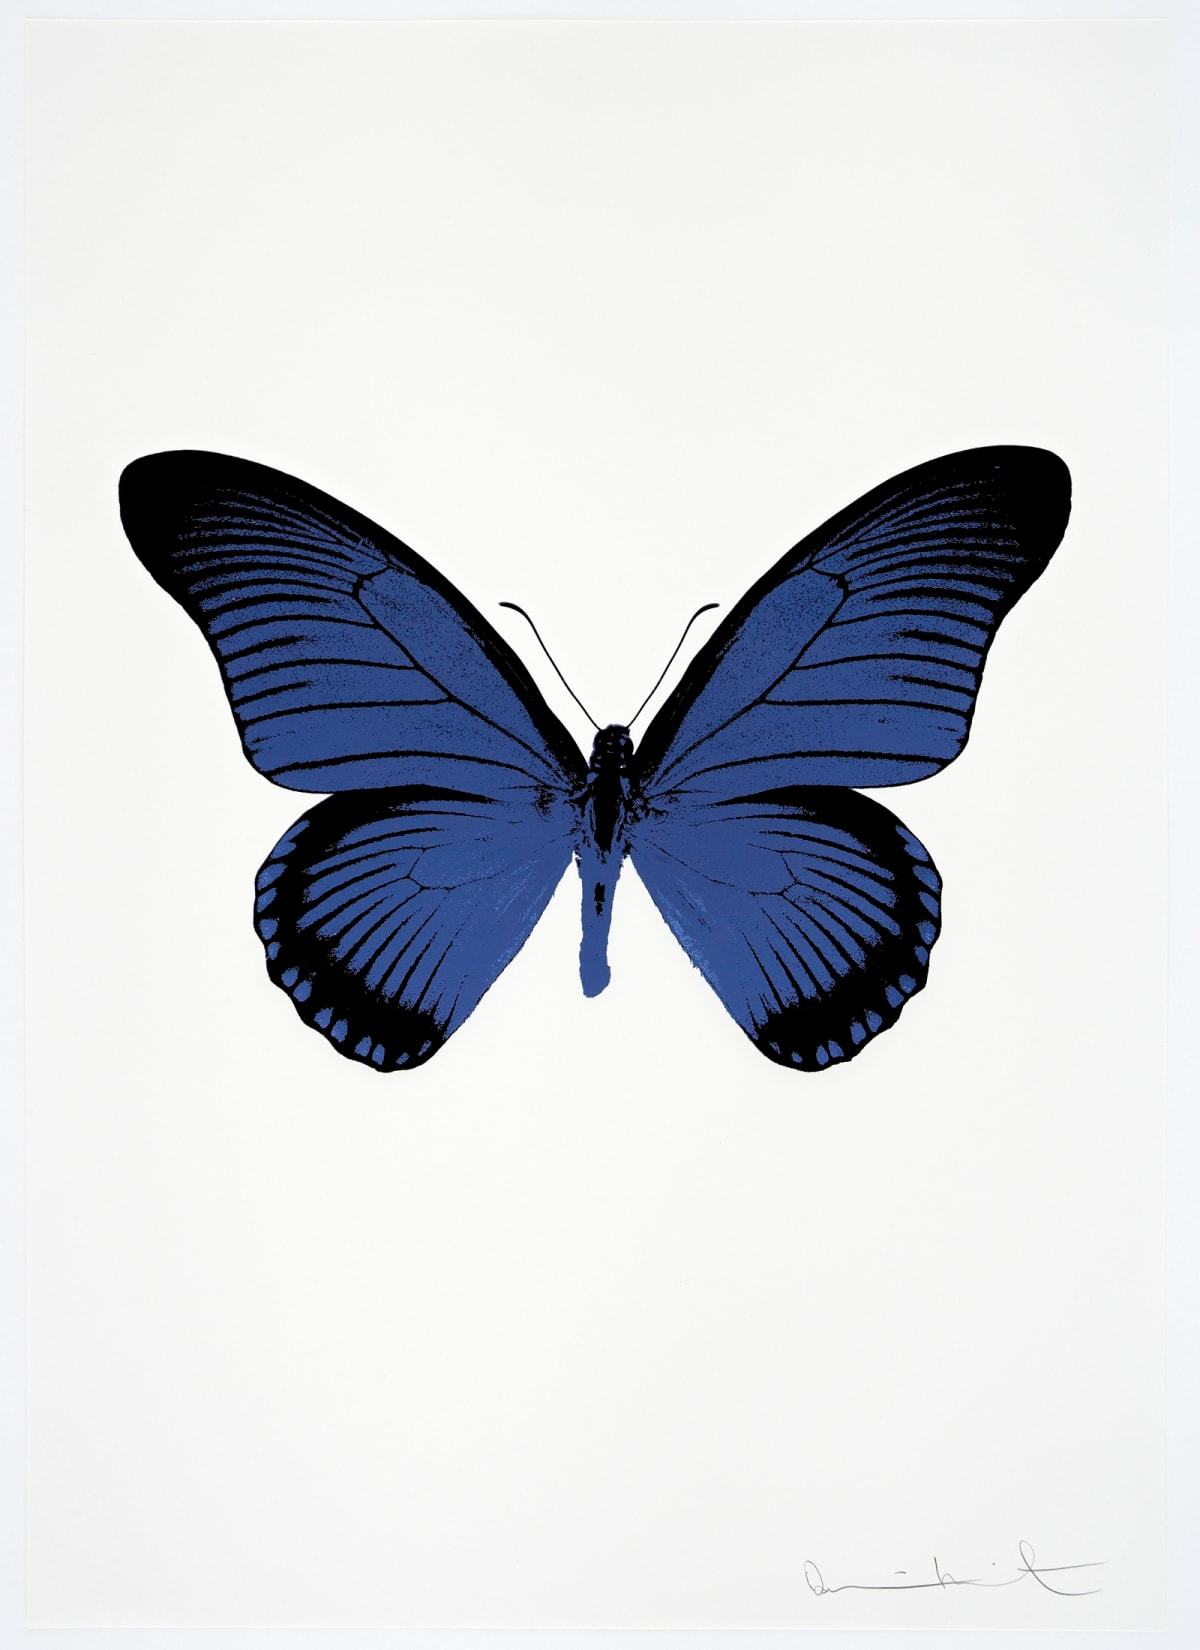 Damien Hirst The Souls IV - Frost Blue/Raven Black, 2010 2 colour foil block on 300gsm Arches 88 archival paper. Signed and numbered. Published by Paul Stolper and Other Criteria 72 x 51cm OC7982 /1418-5 Edition of 15